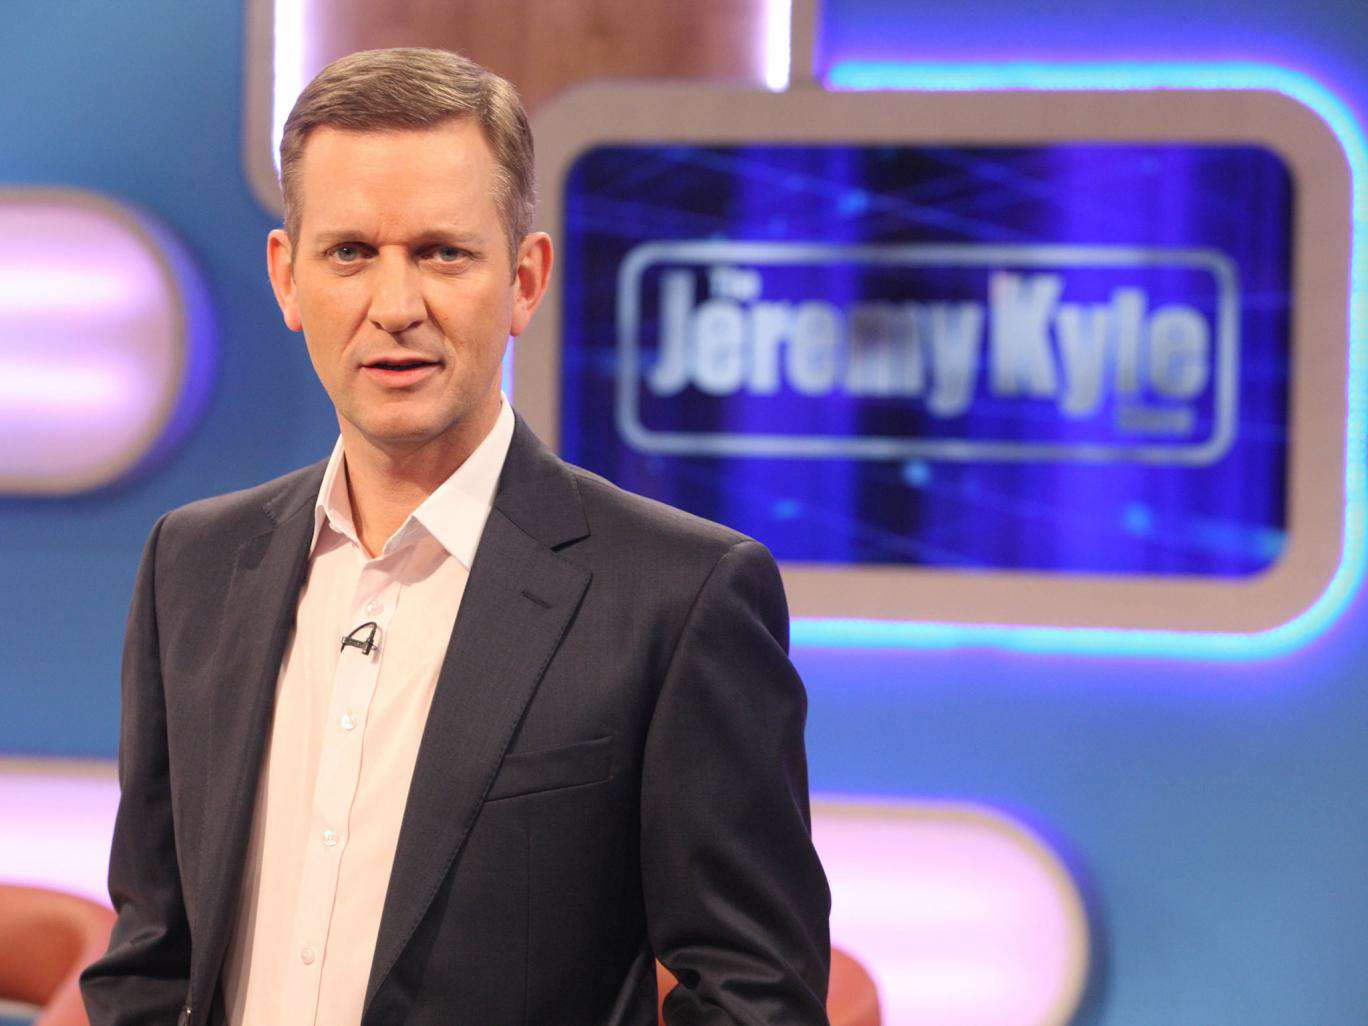 Jeremy Kyles Divorce Is Like An Episode Of His TV Show kyle1